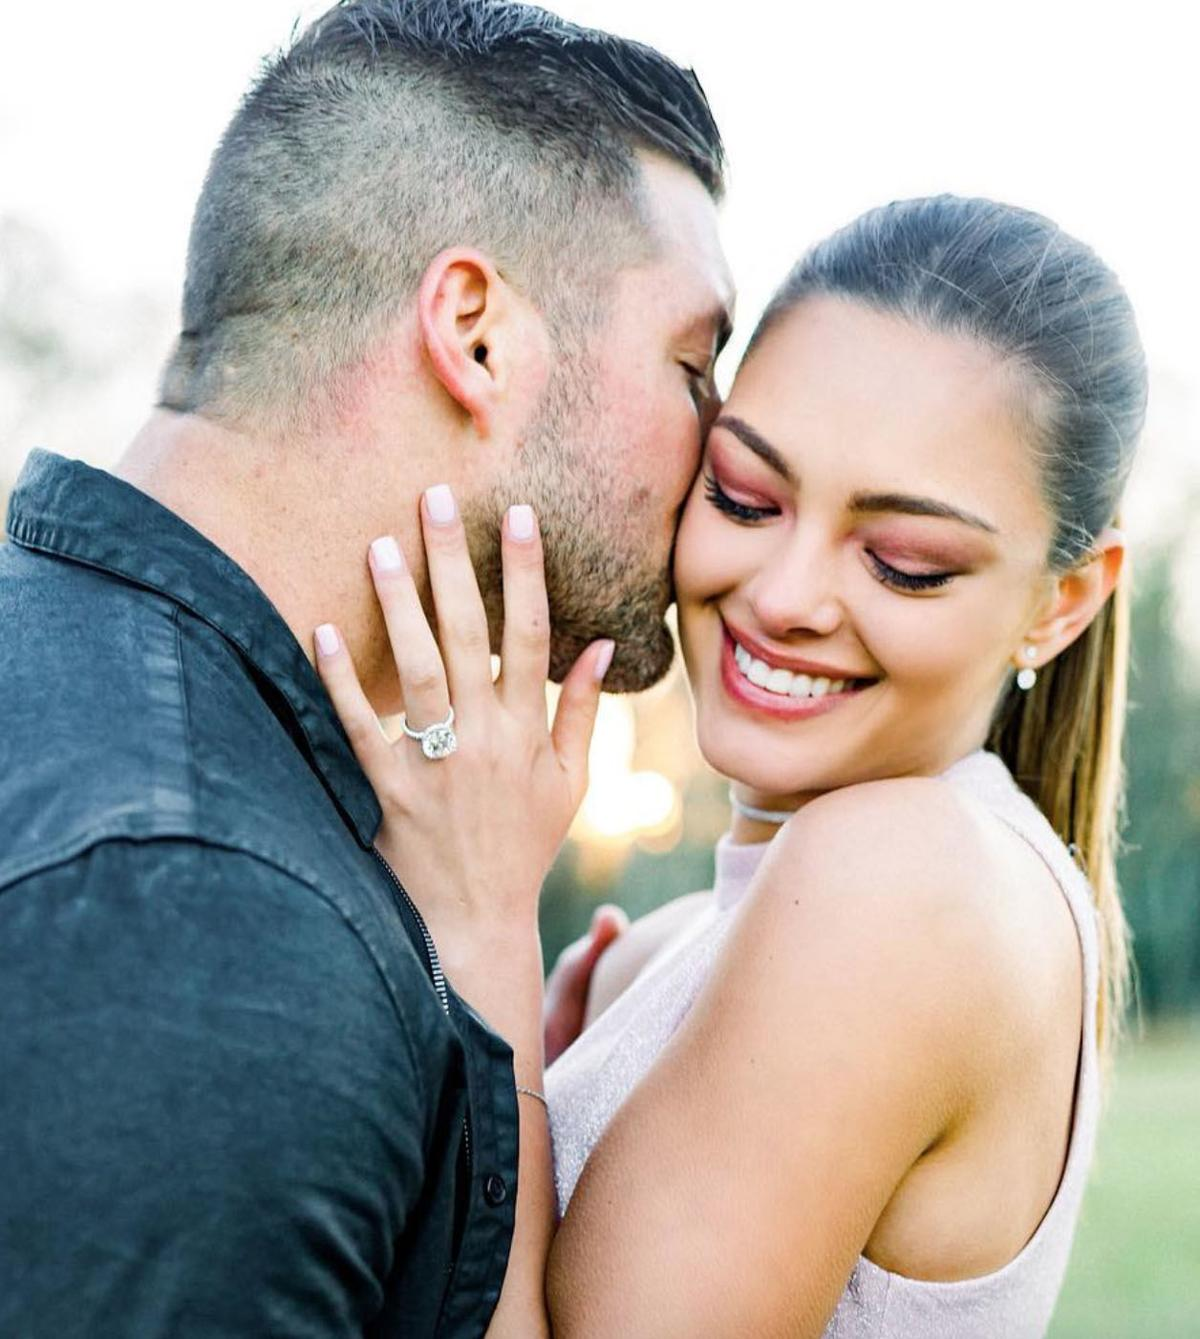 PHOTOS Tim Tebow Proposes To Miss Universe Demi Leigh